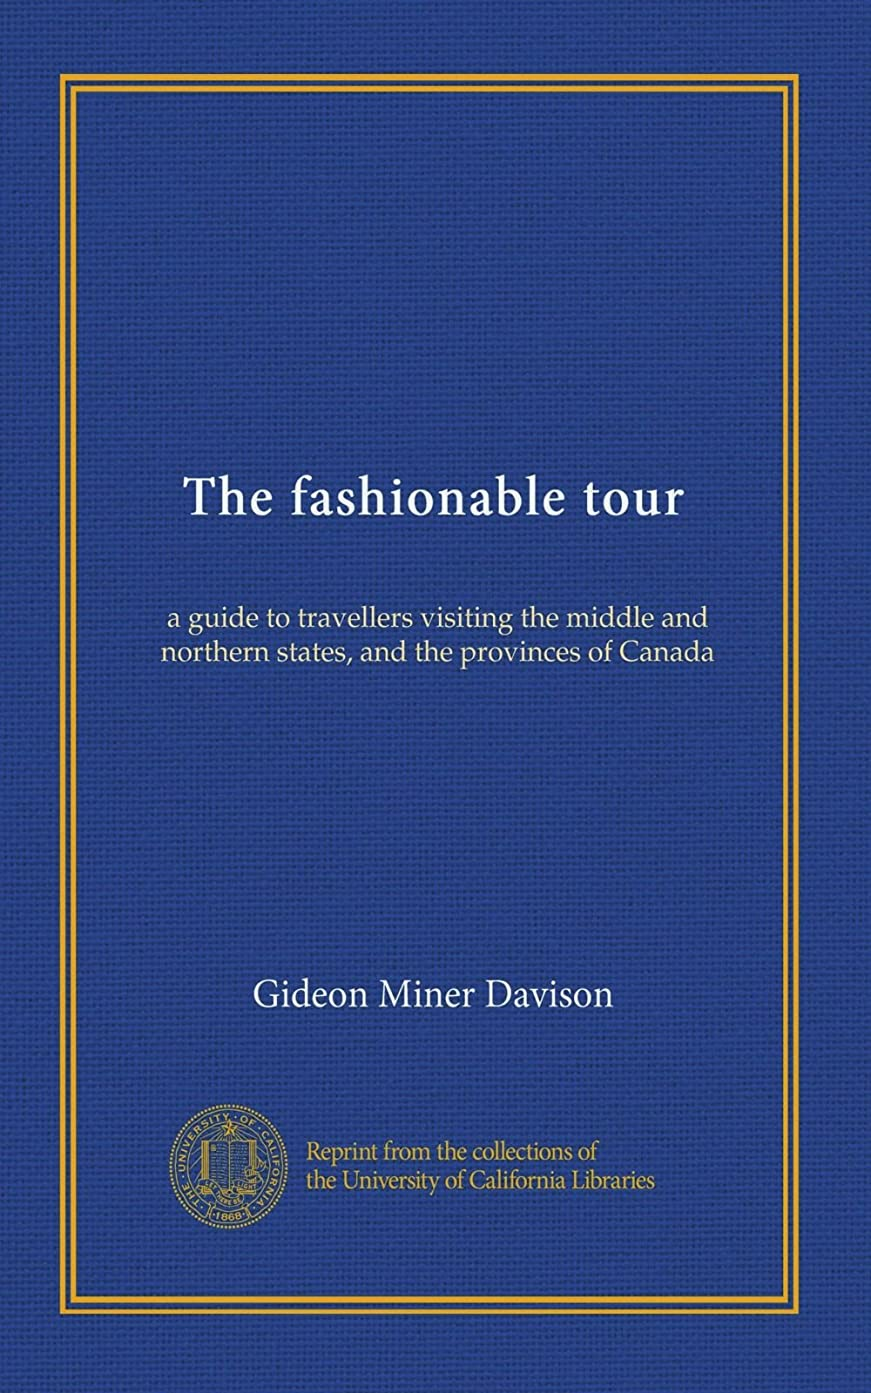 ぴかぴか花火症候群The fashionable tour: a guide to travellers visiting the middle and northern states, and the provinces of Canada